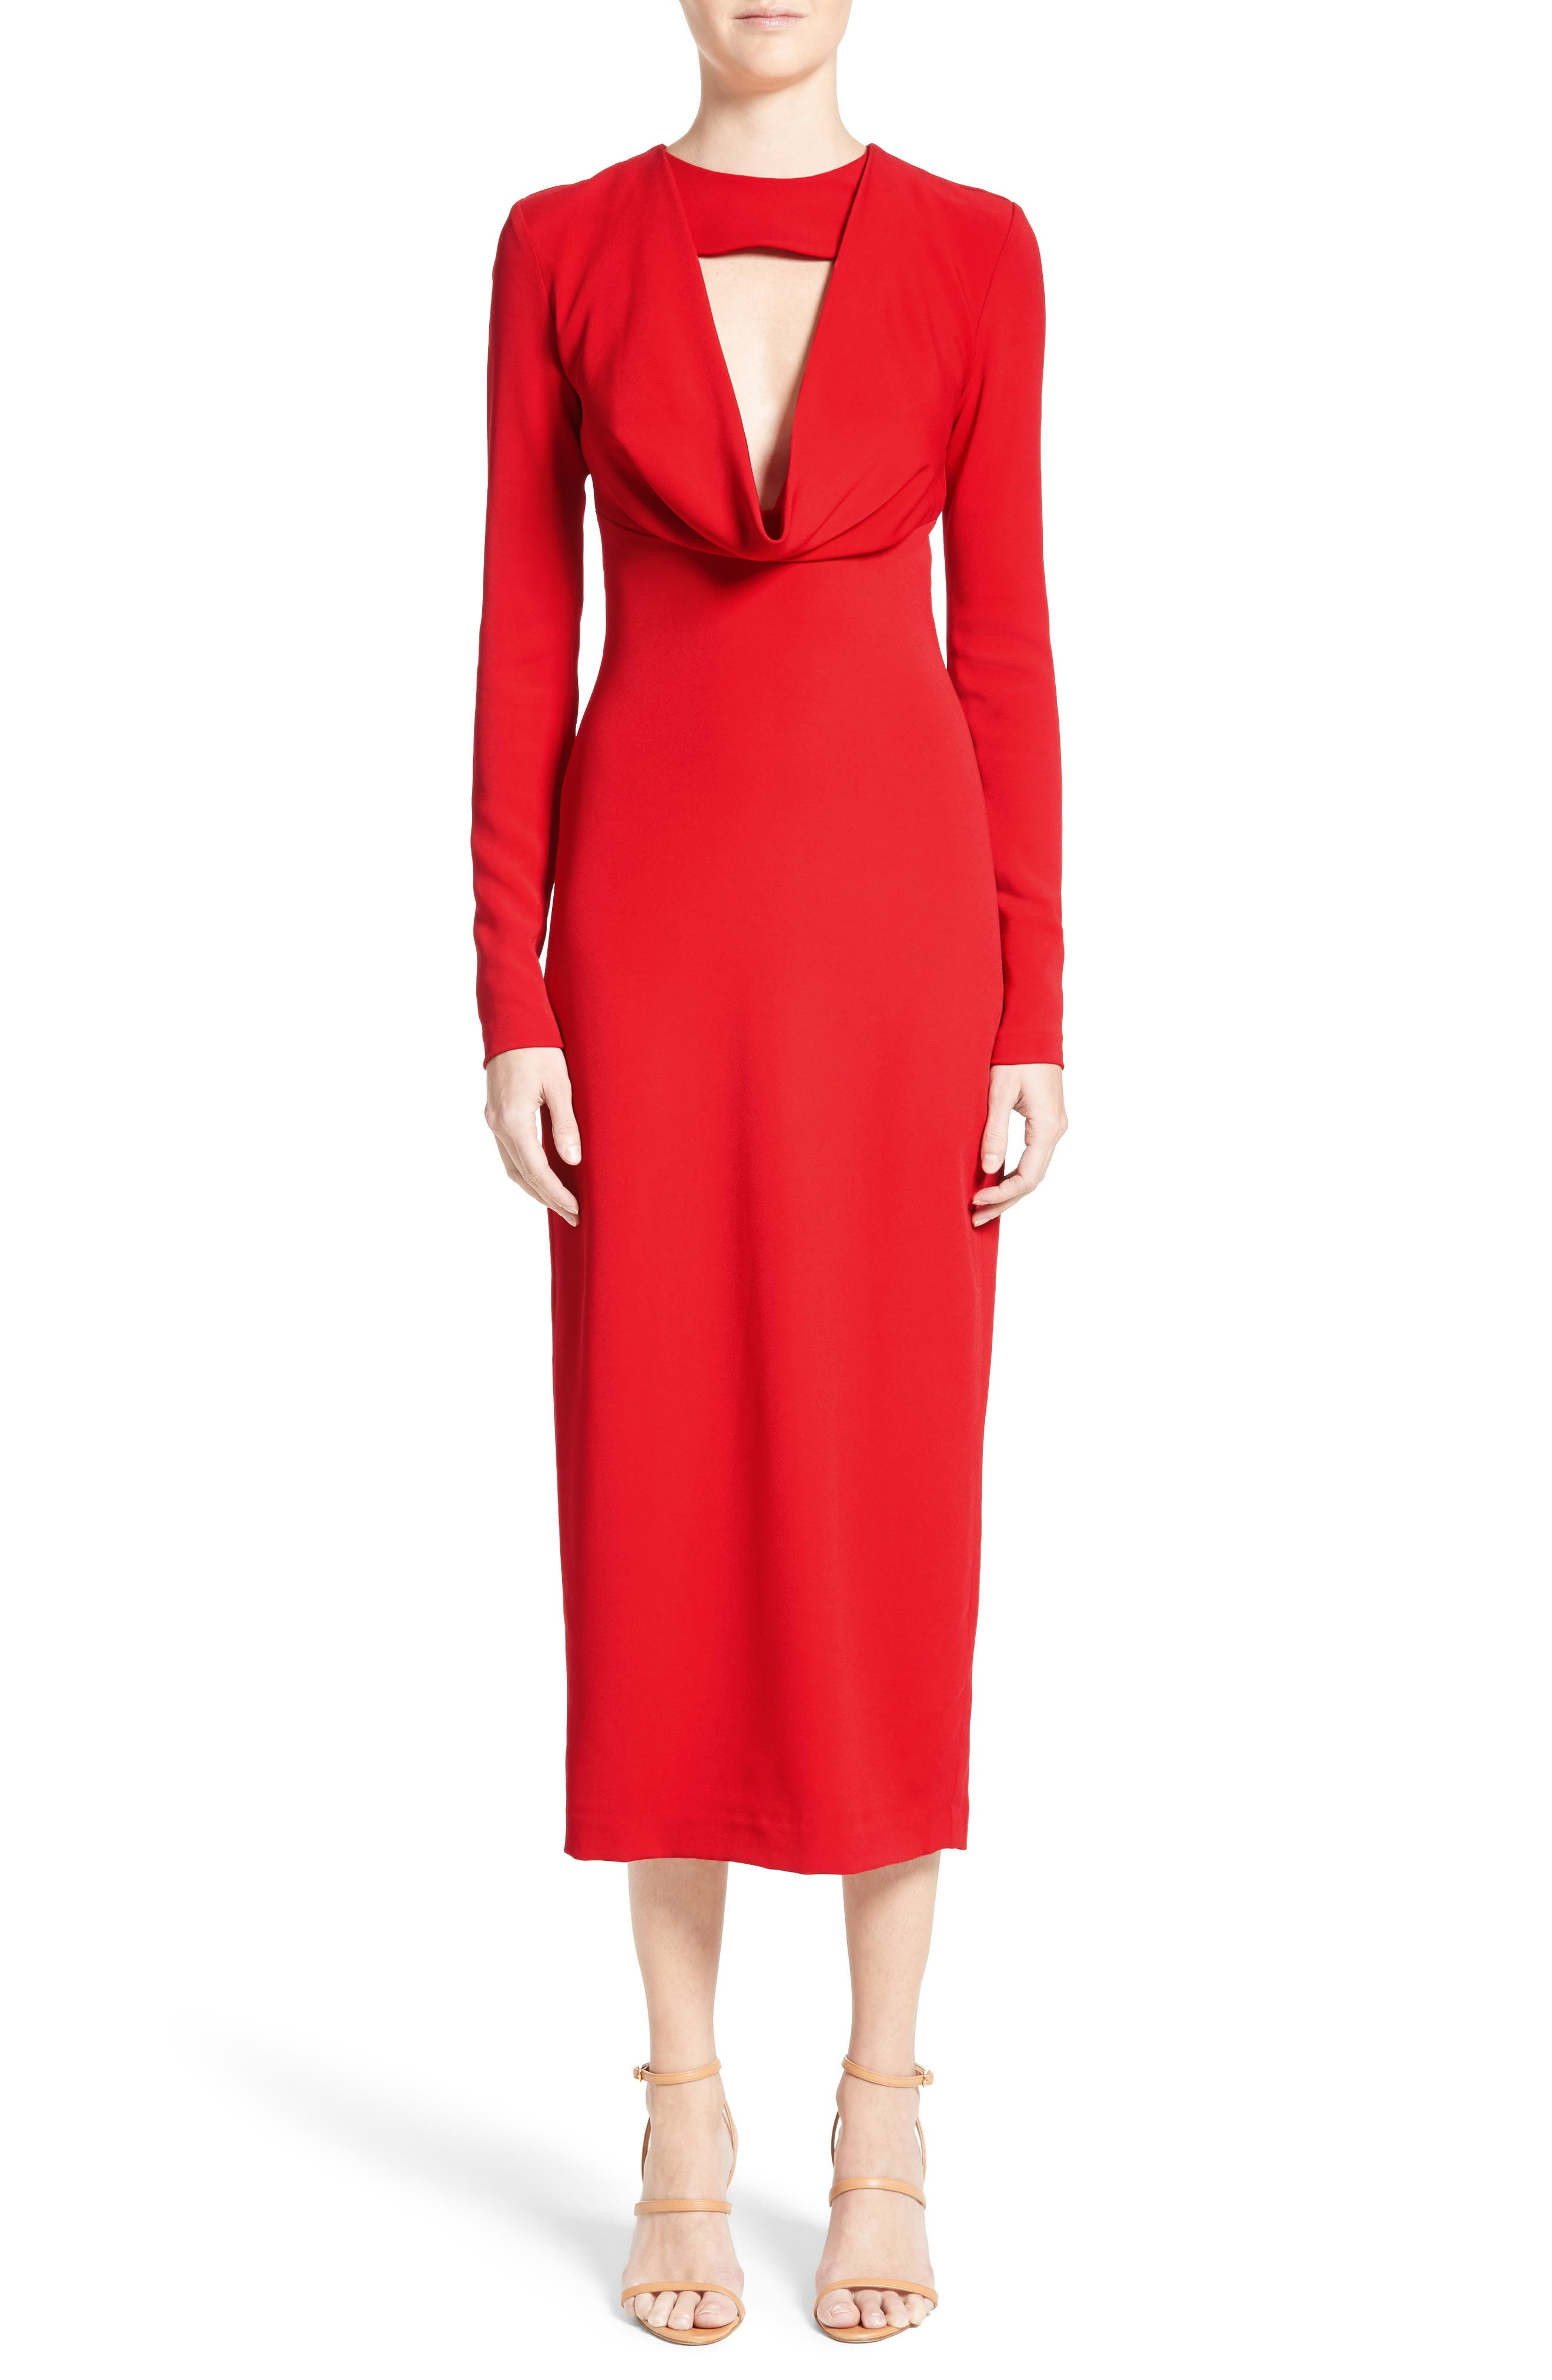 Cushnie et Ochs Cowl Neck Pencil Dress